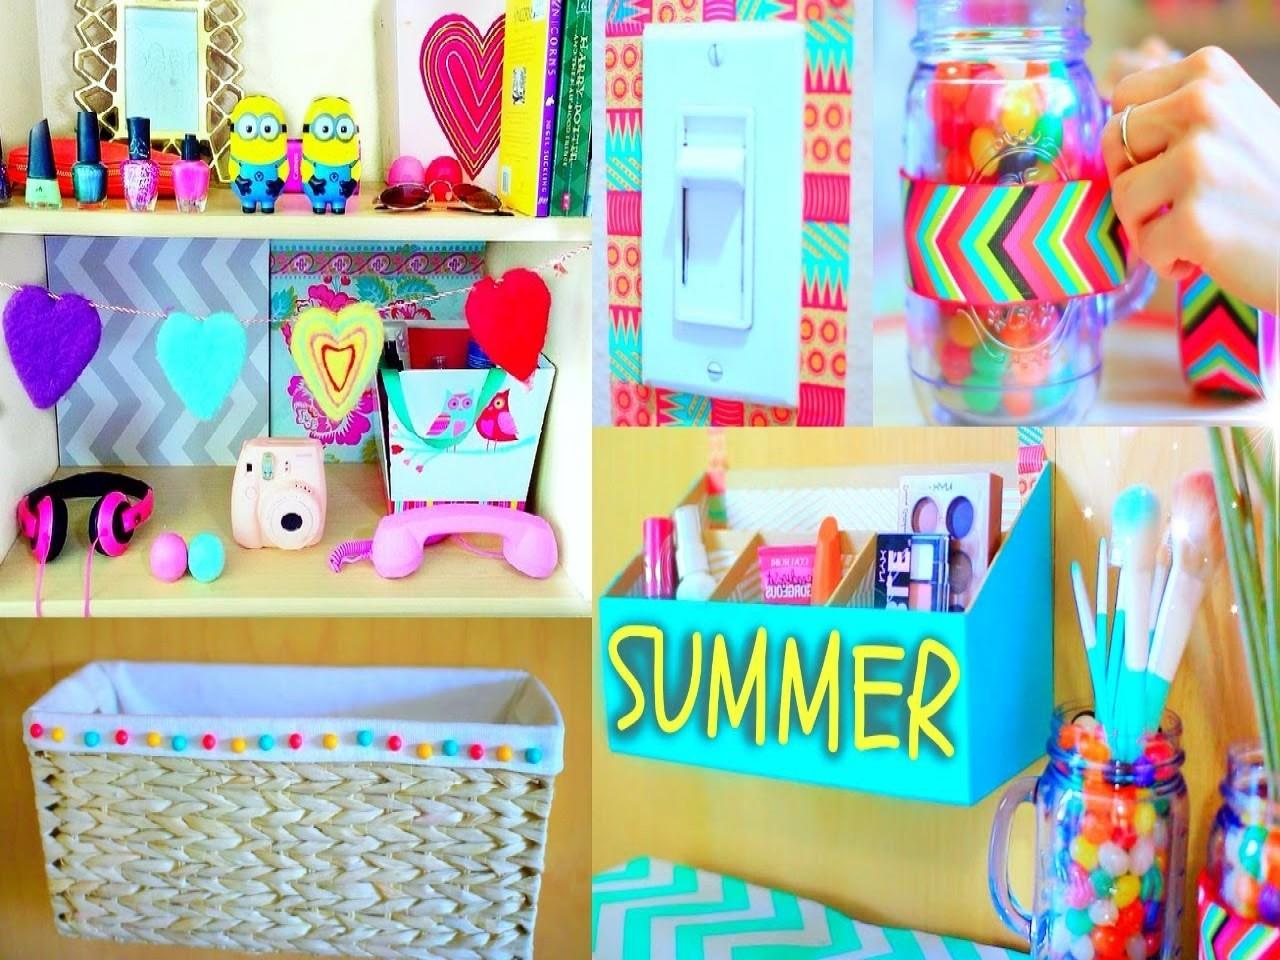 Mind Blowing Diy Summer Wall Art Ideas That Will Fit In Any Interior Style For 2021 Tons Of Variety Decoratorist